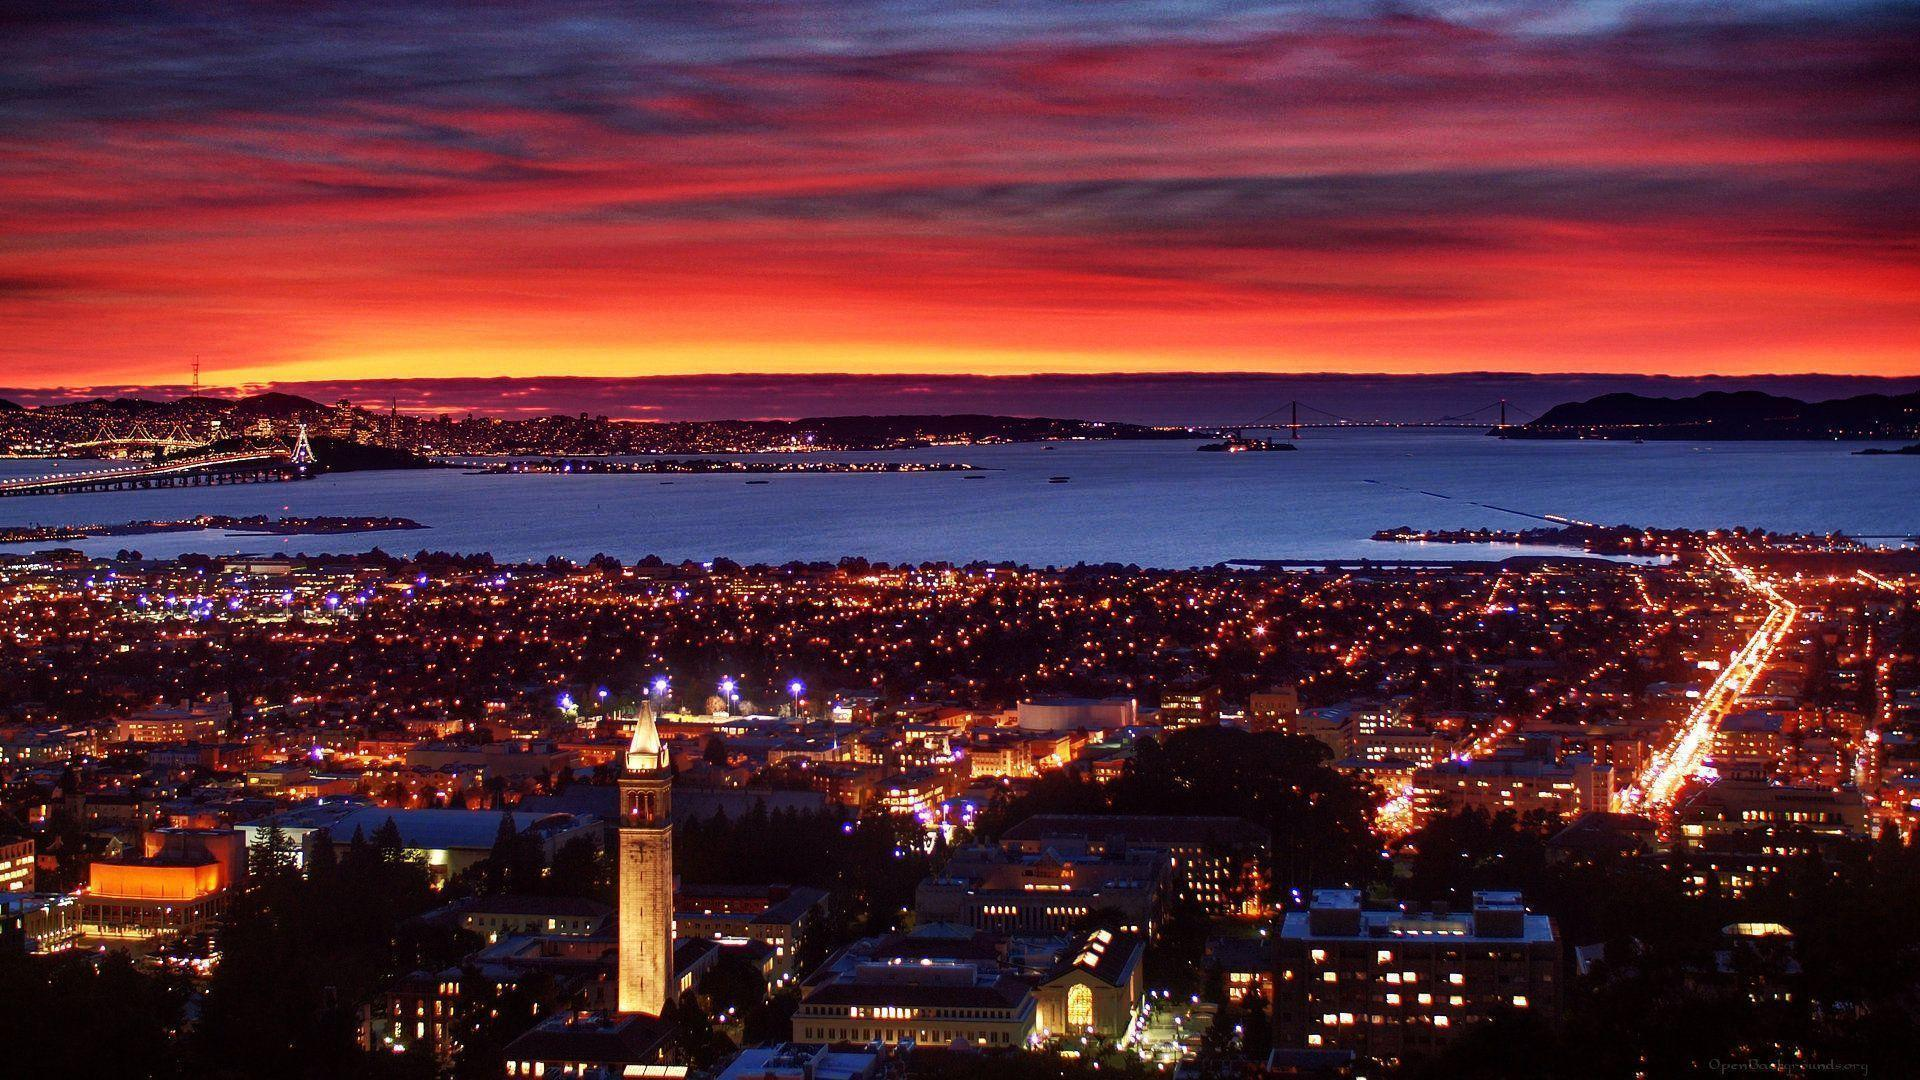 UC Berkeley Wallpapers 1920x1080